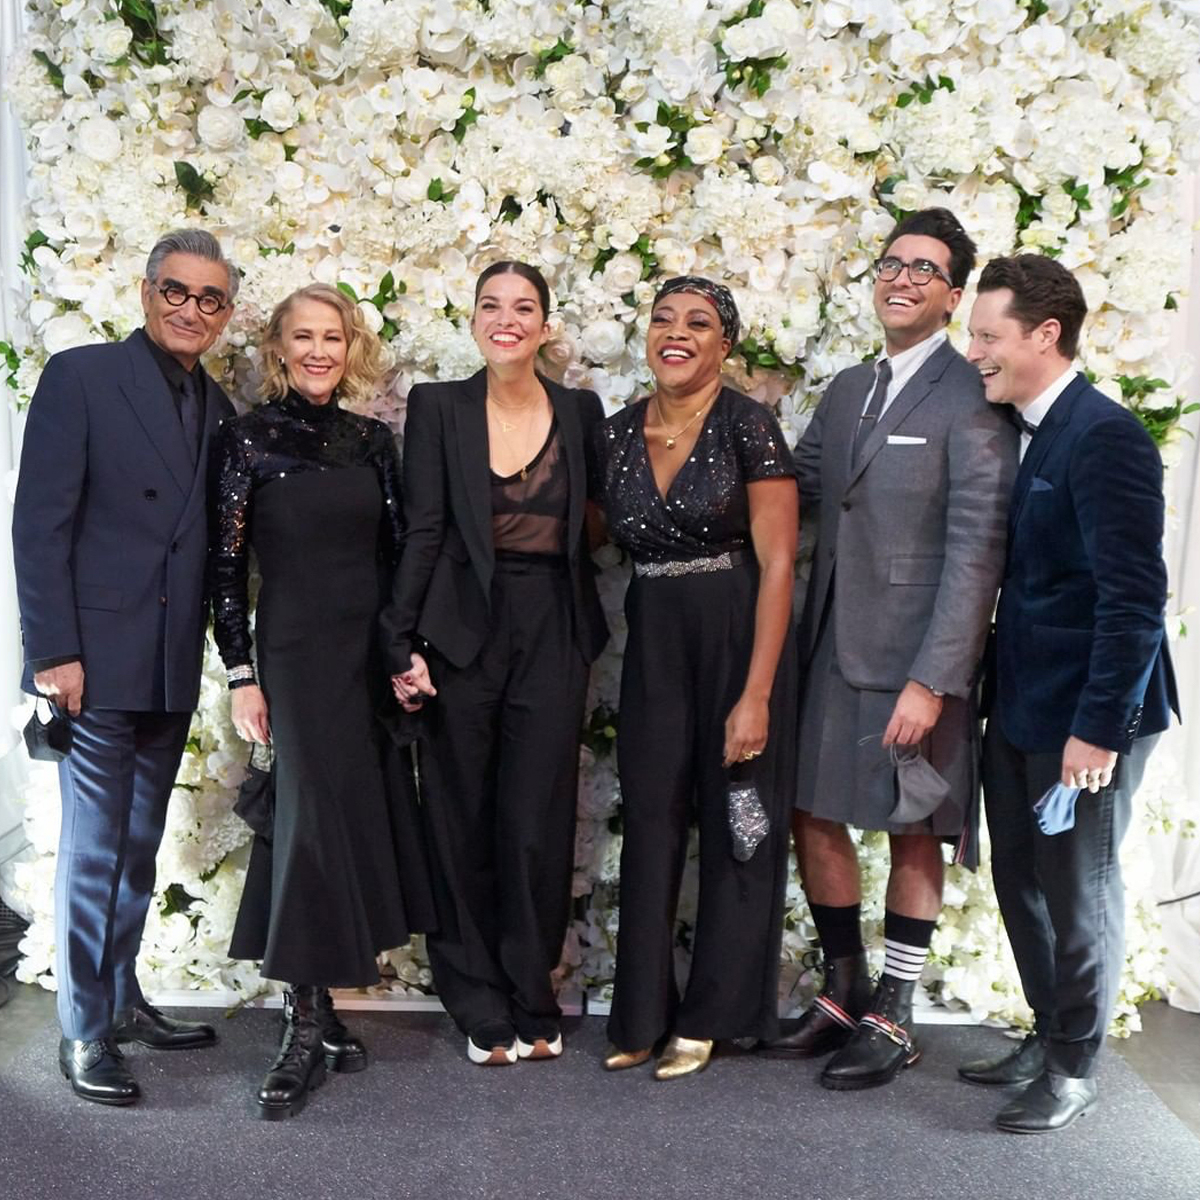 Why the Schitt's Creek Cast Had to Uninvite Guests to Their Emmys Party